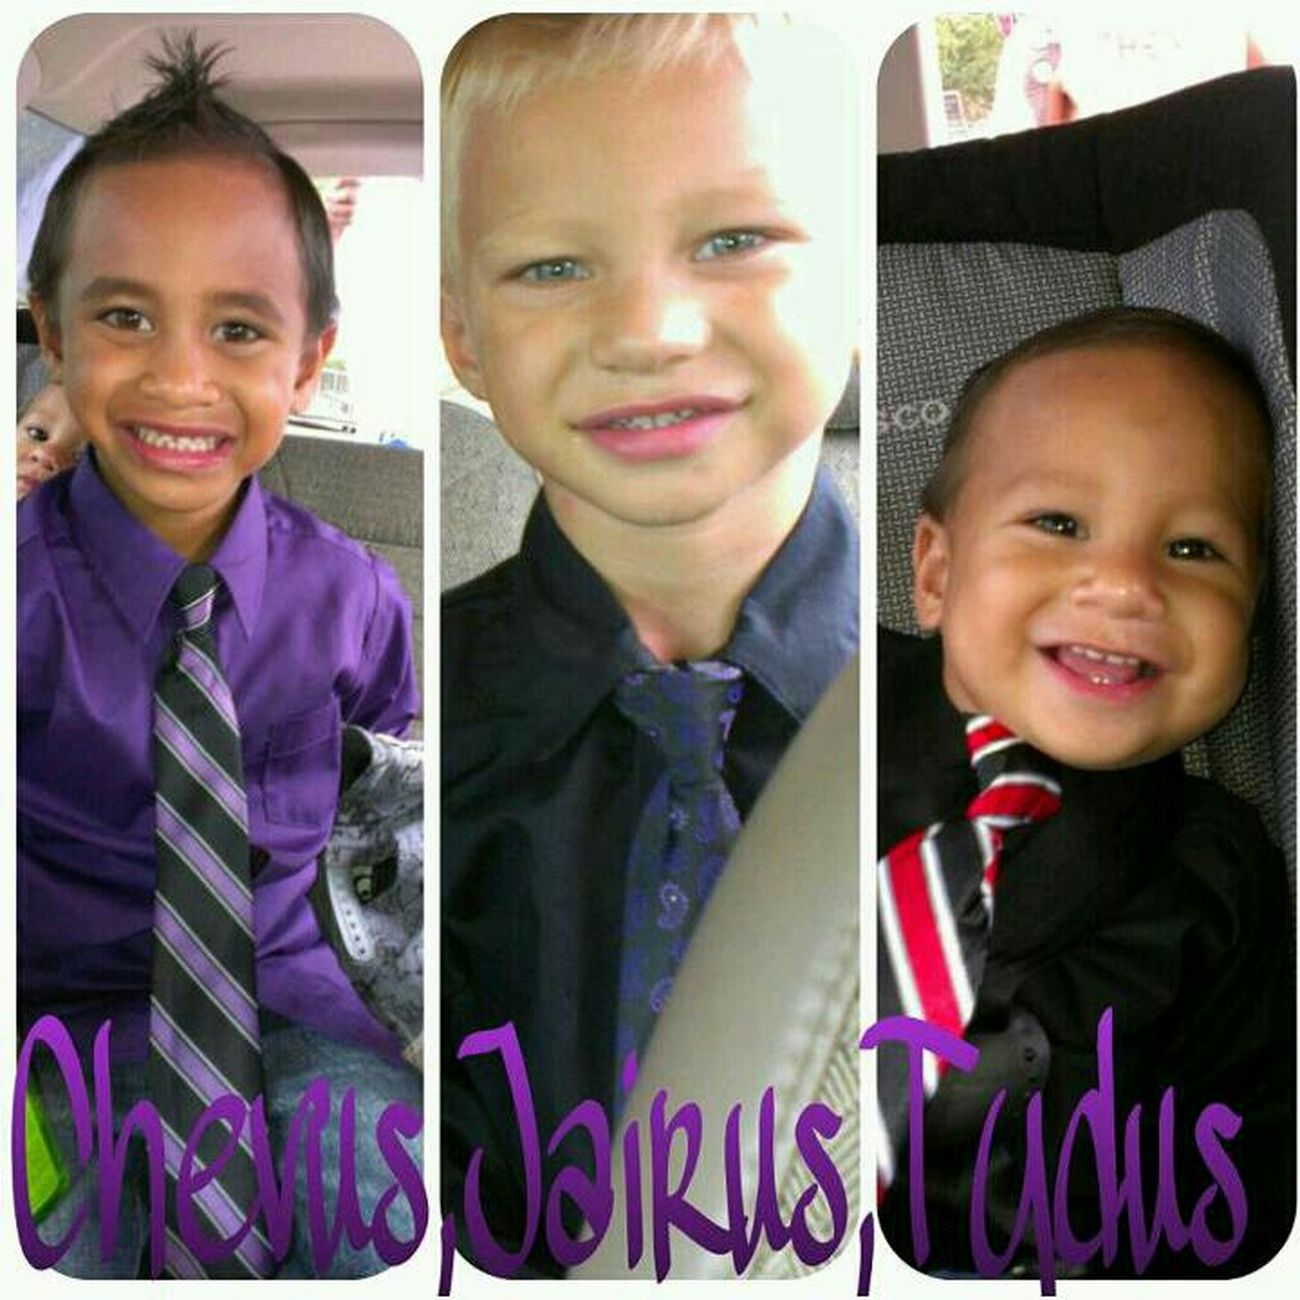 These 3 Boys , I Miss Them<3 #hansomes #cuties #missthem #lovethem #stolethispicture #fromtheirmother #lol